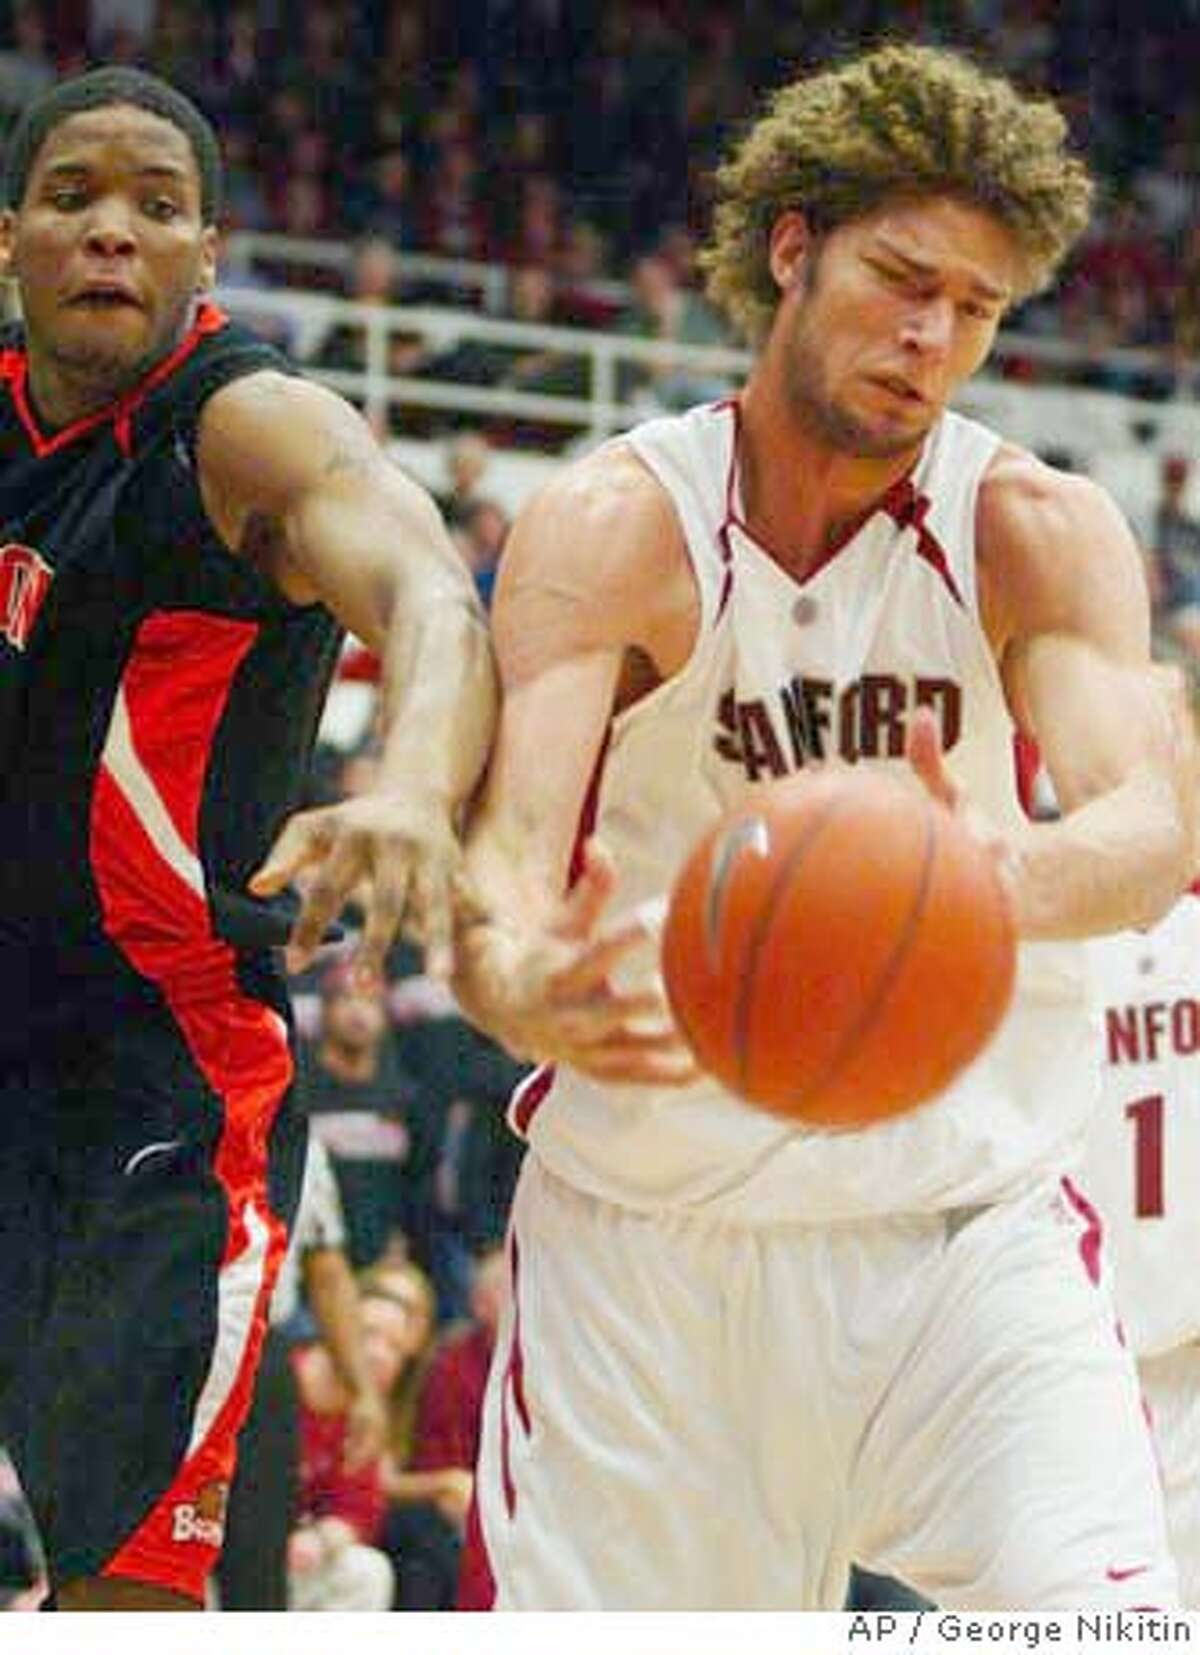 Stanford's Robin Lopez, right, and Oregon State's Calvin Hampton reach for a loose ball during the first period of a college basketball game, Saturday, Feb. 9, 2008 in Stanford, Calif. Stanford beat Oregon State 71-56. (AP Photo/George Nikitin) EFE OUT